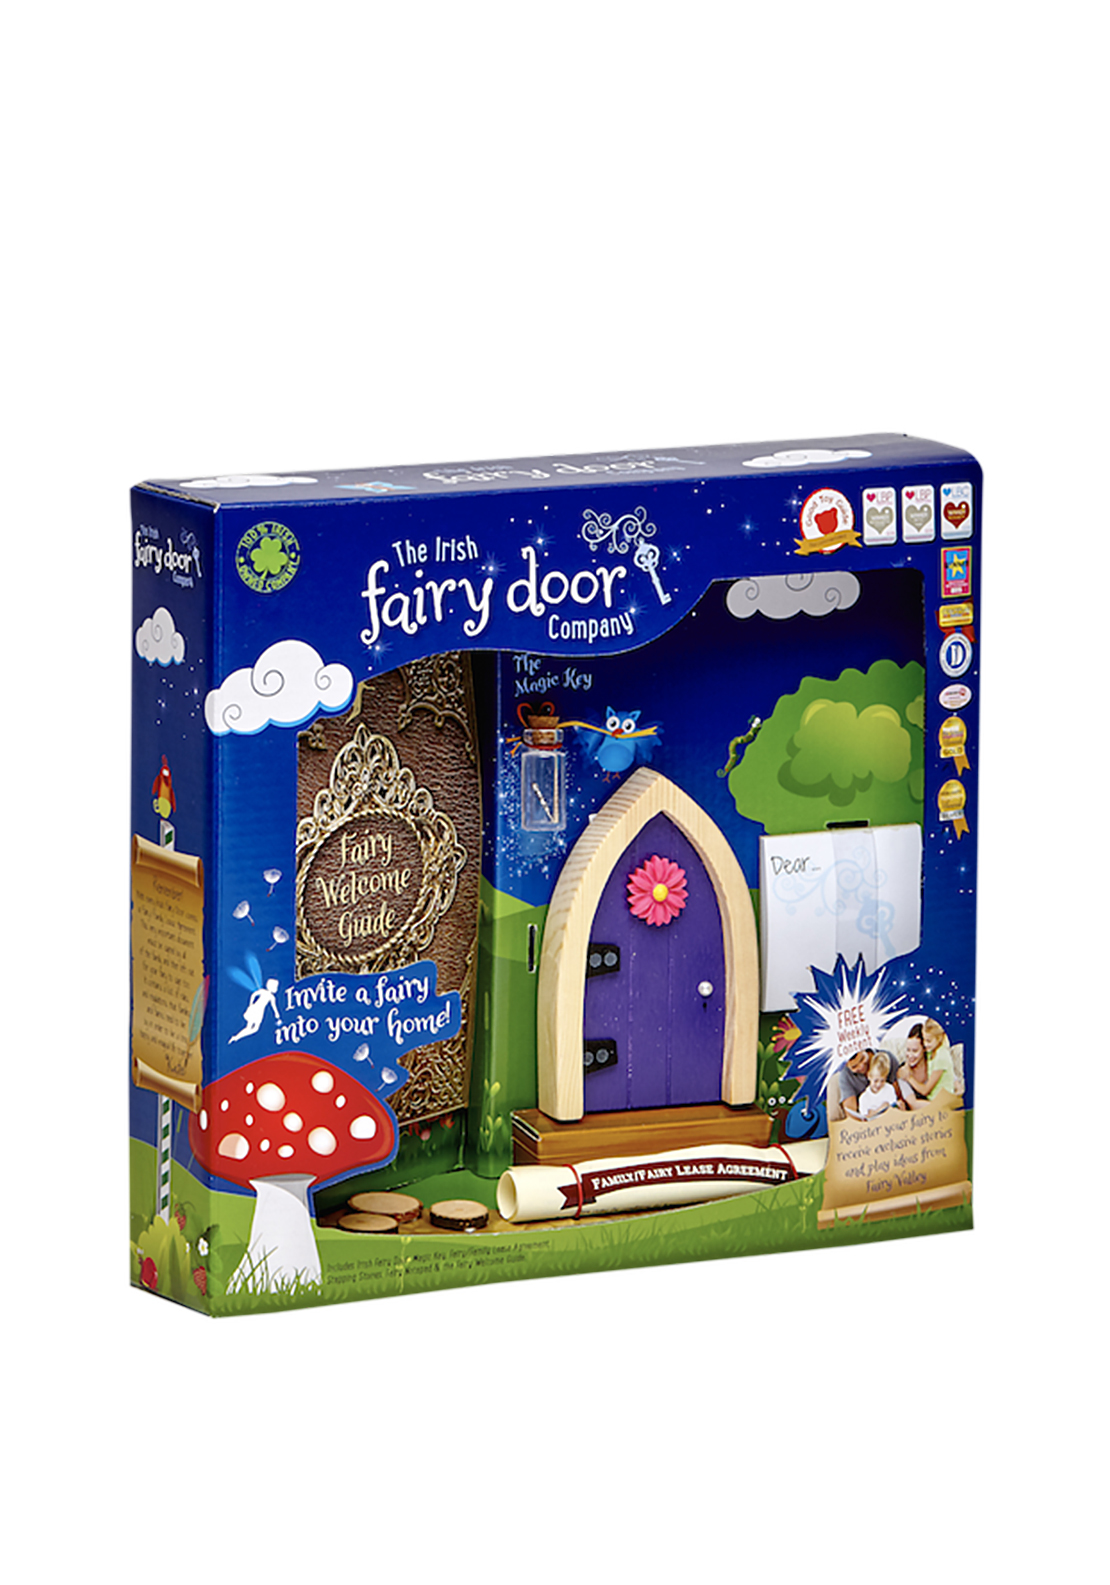 The irish fairy door company arched fairy door purple for The irish fairy door company facebook